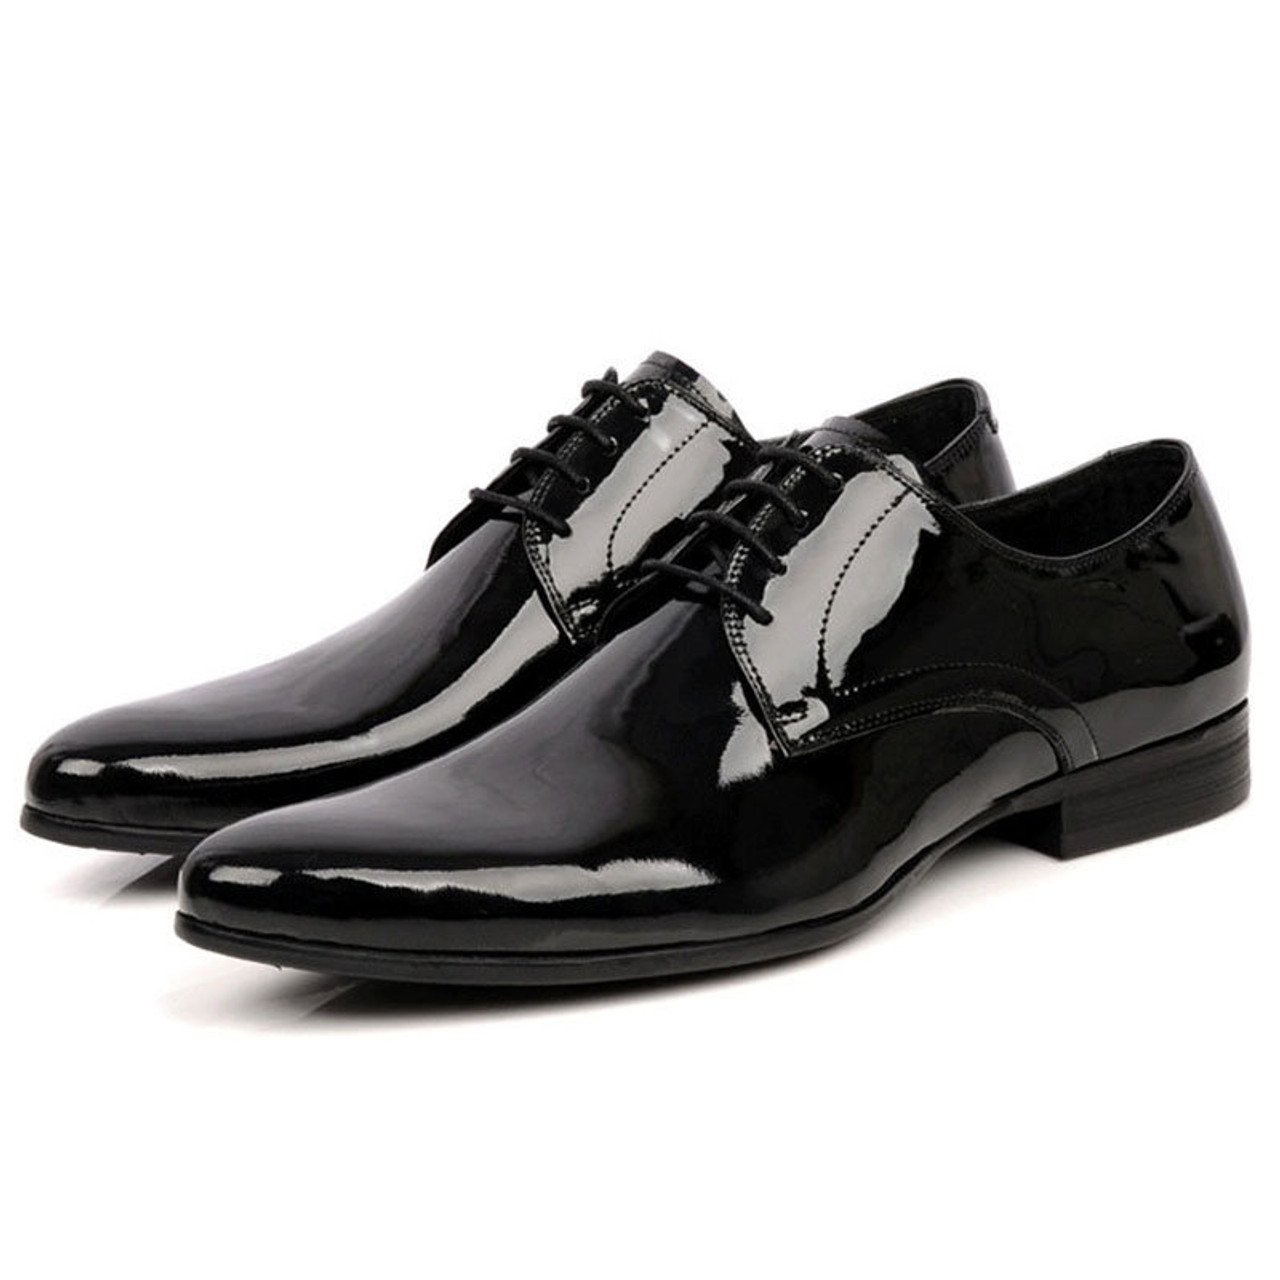 Mens Black Patent Leather Shoes Mens Tuxedo Shoes For Wedding